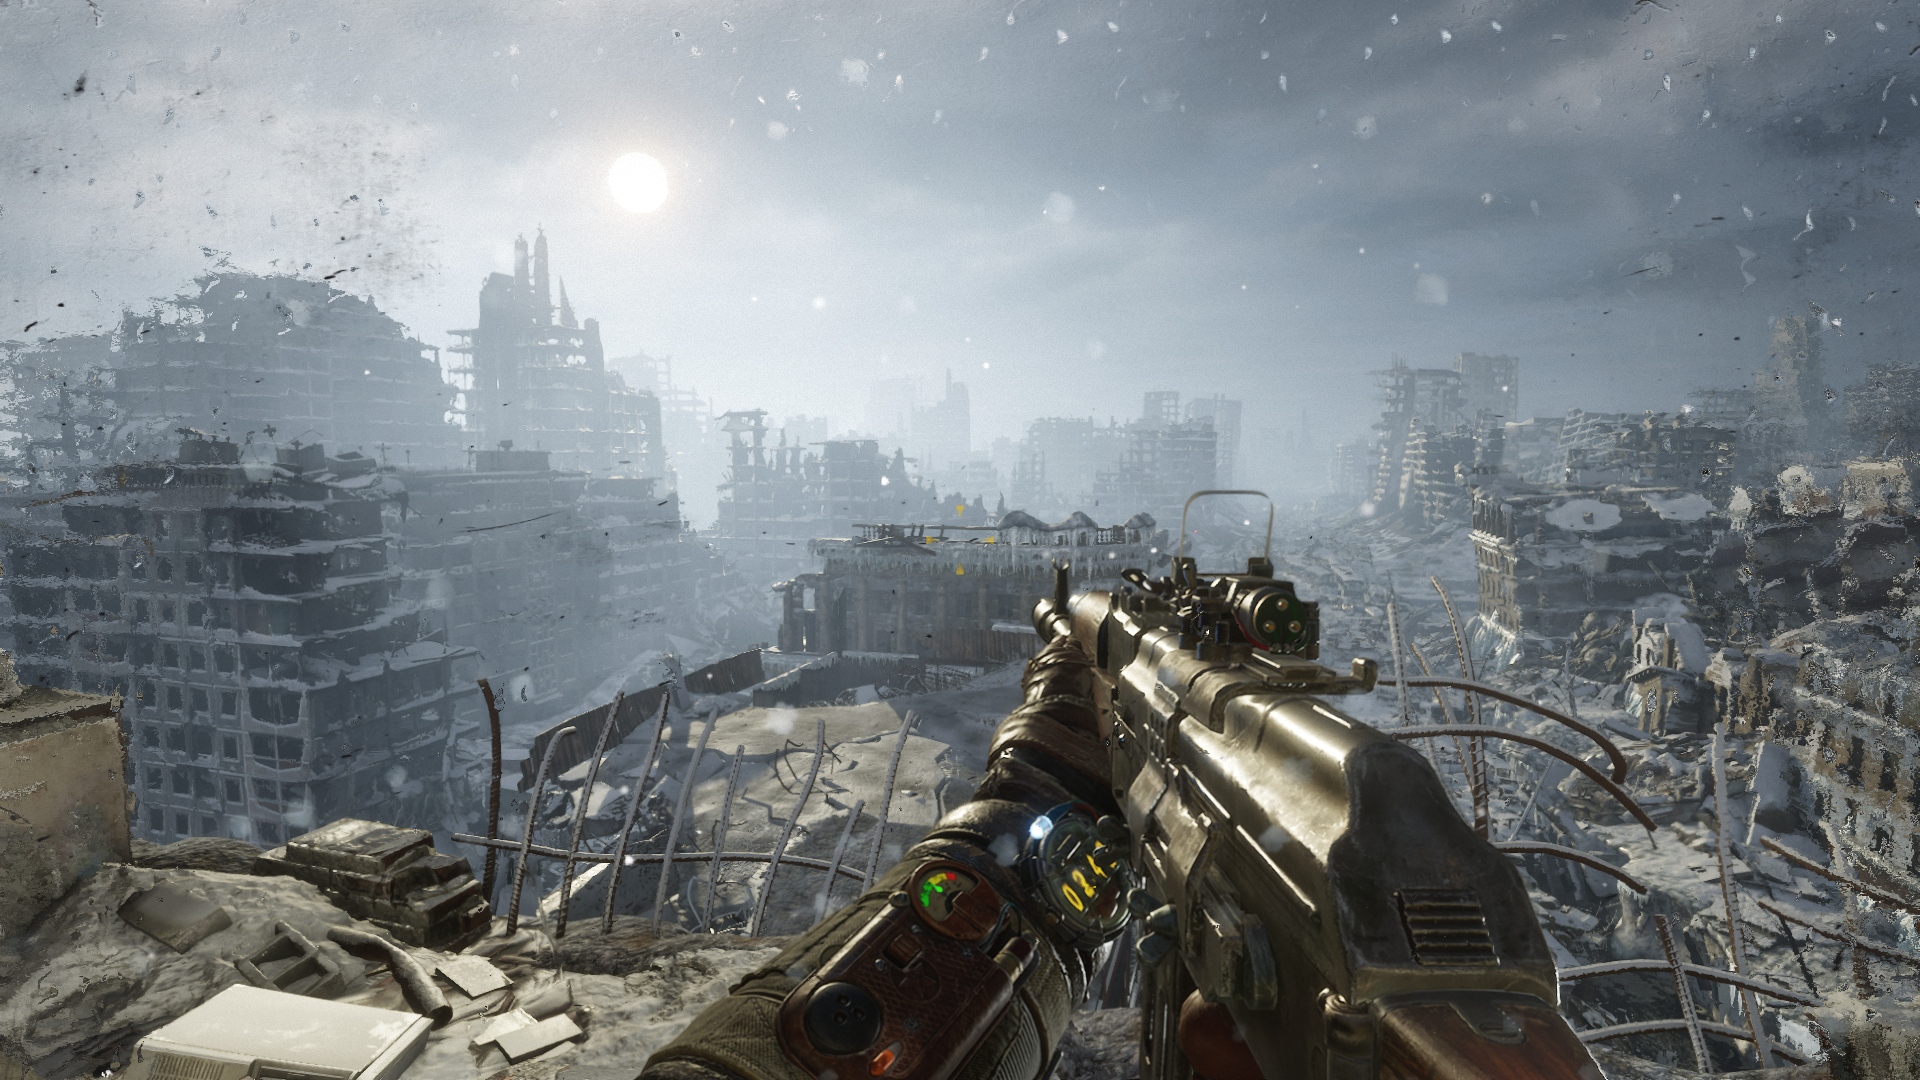 Metro Exodus PC graphics performance: How to get the best